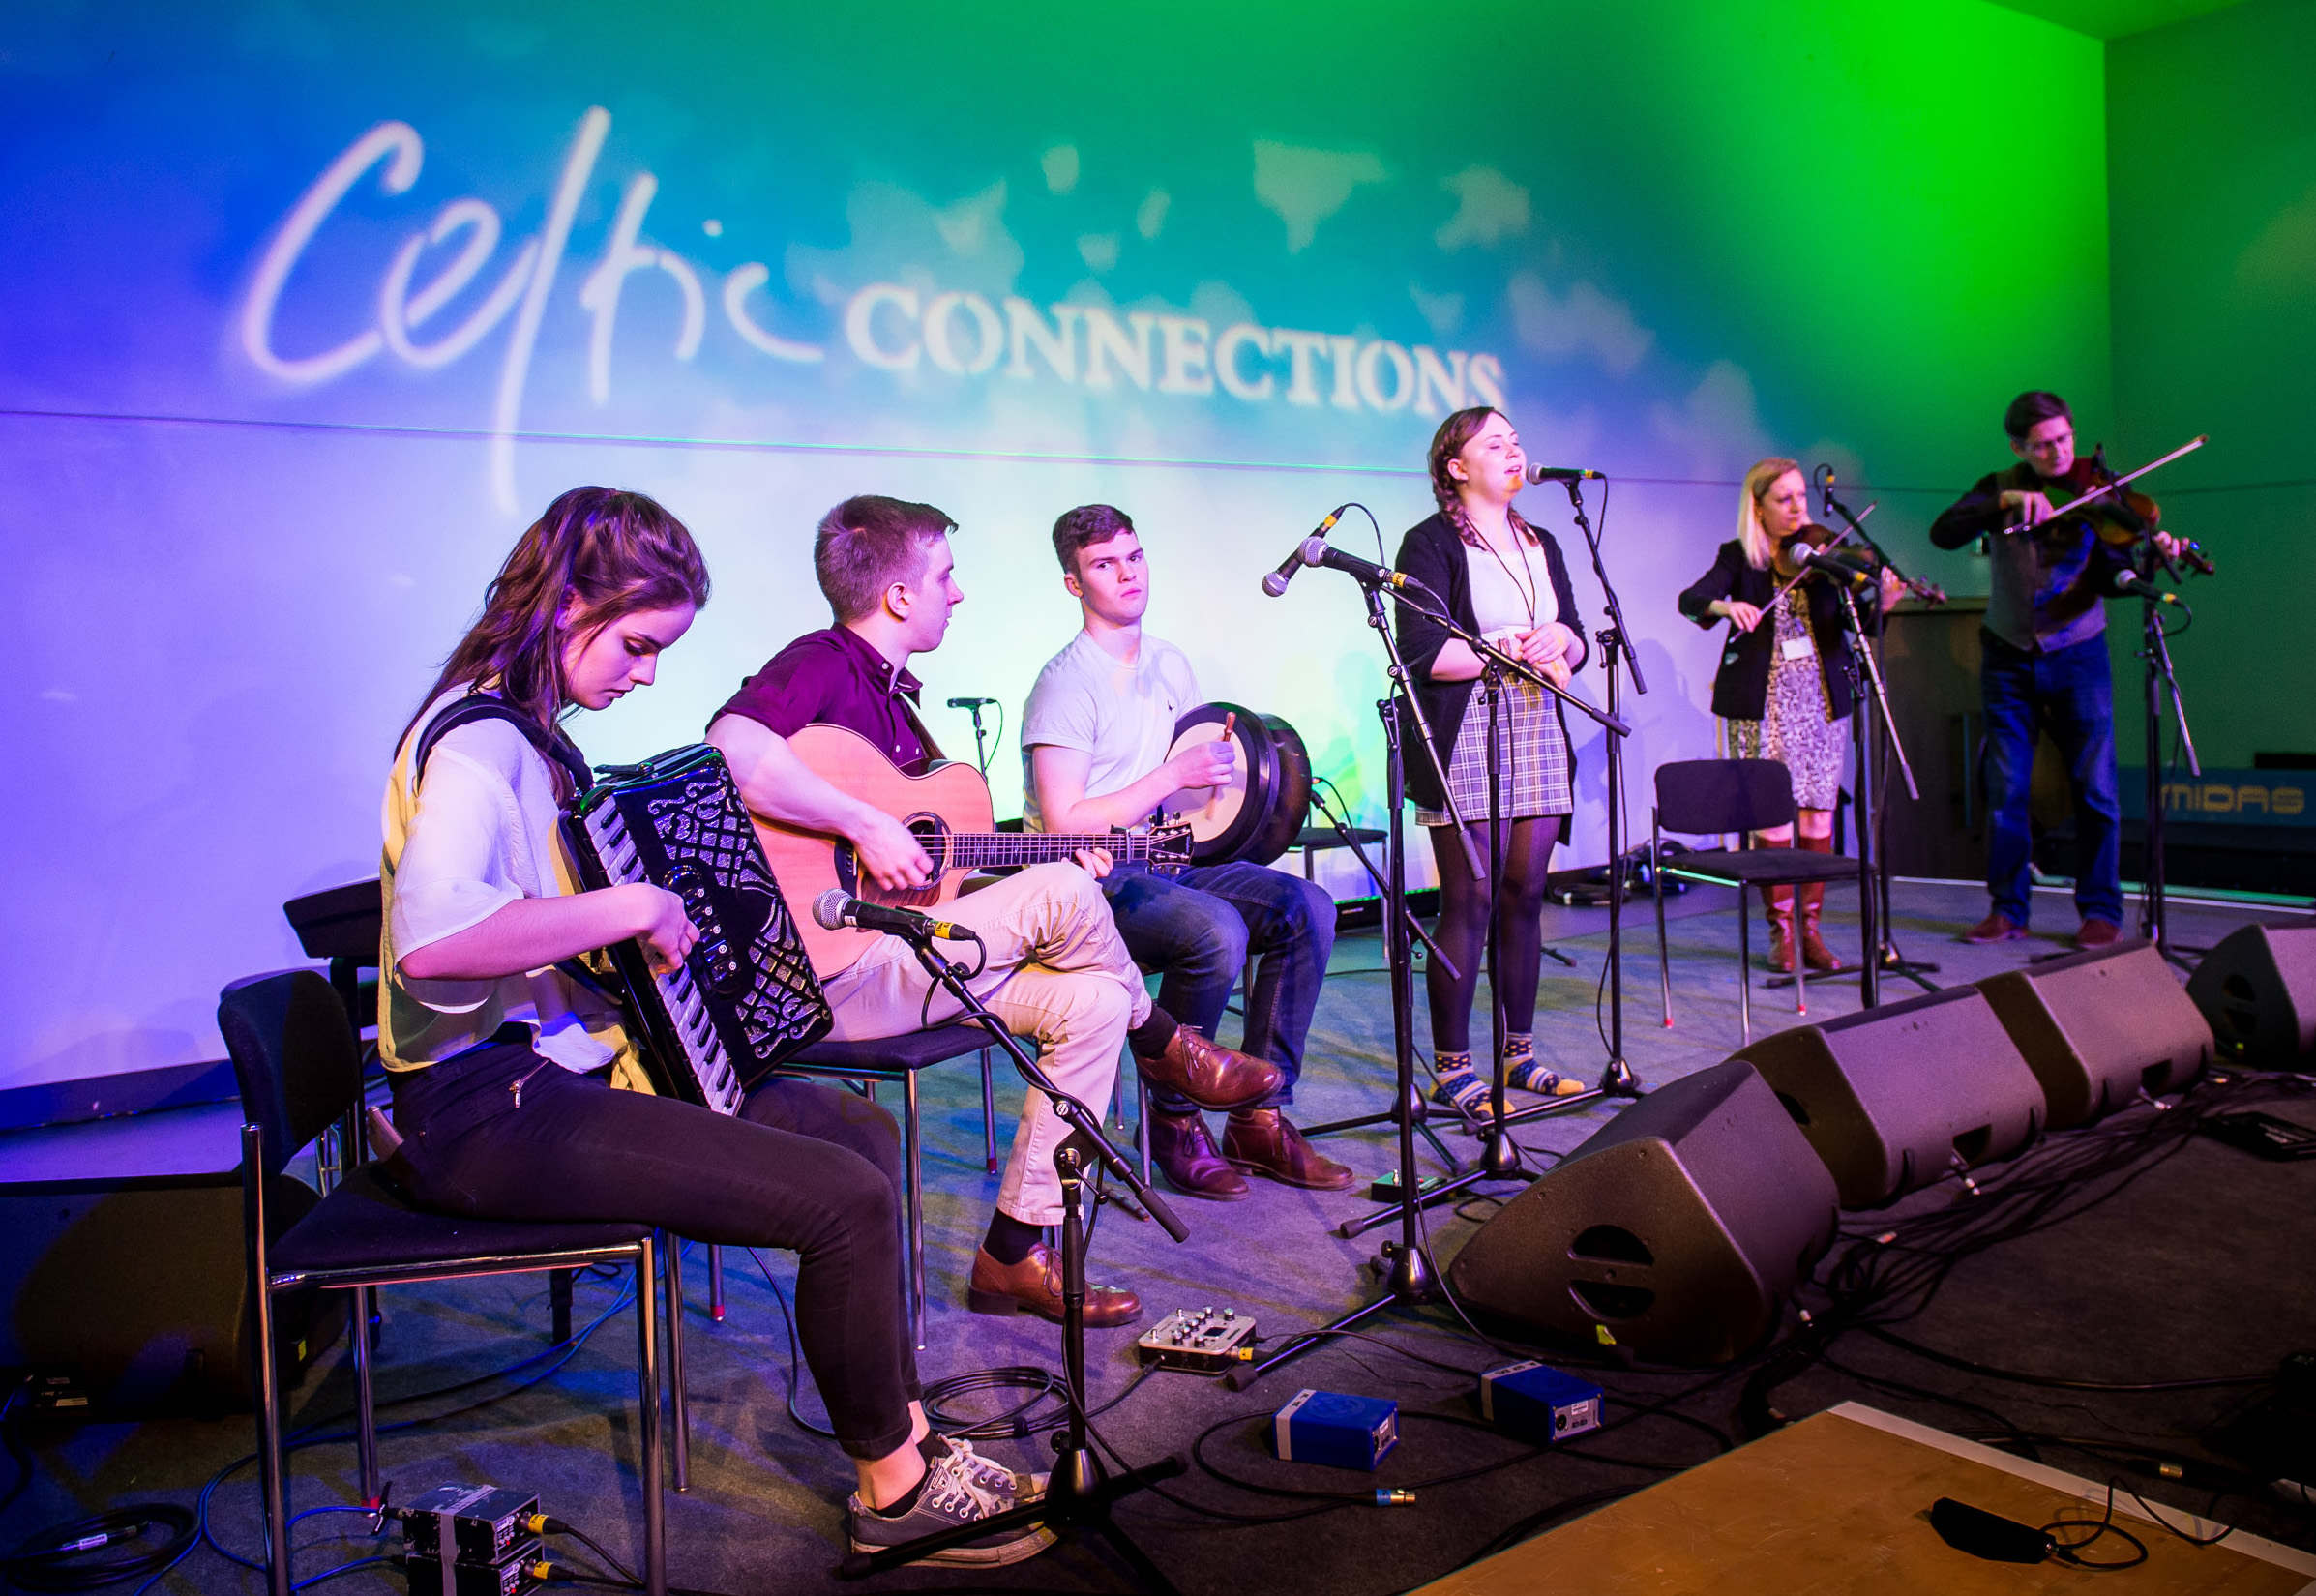 New album showcases students' musical talents